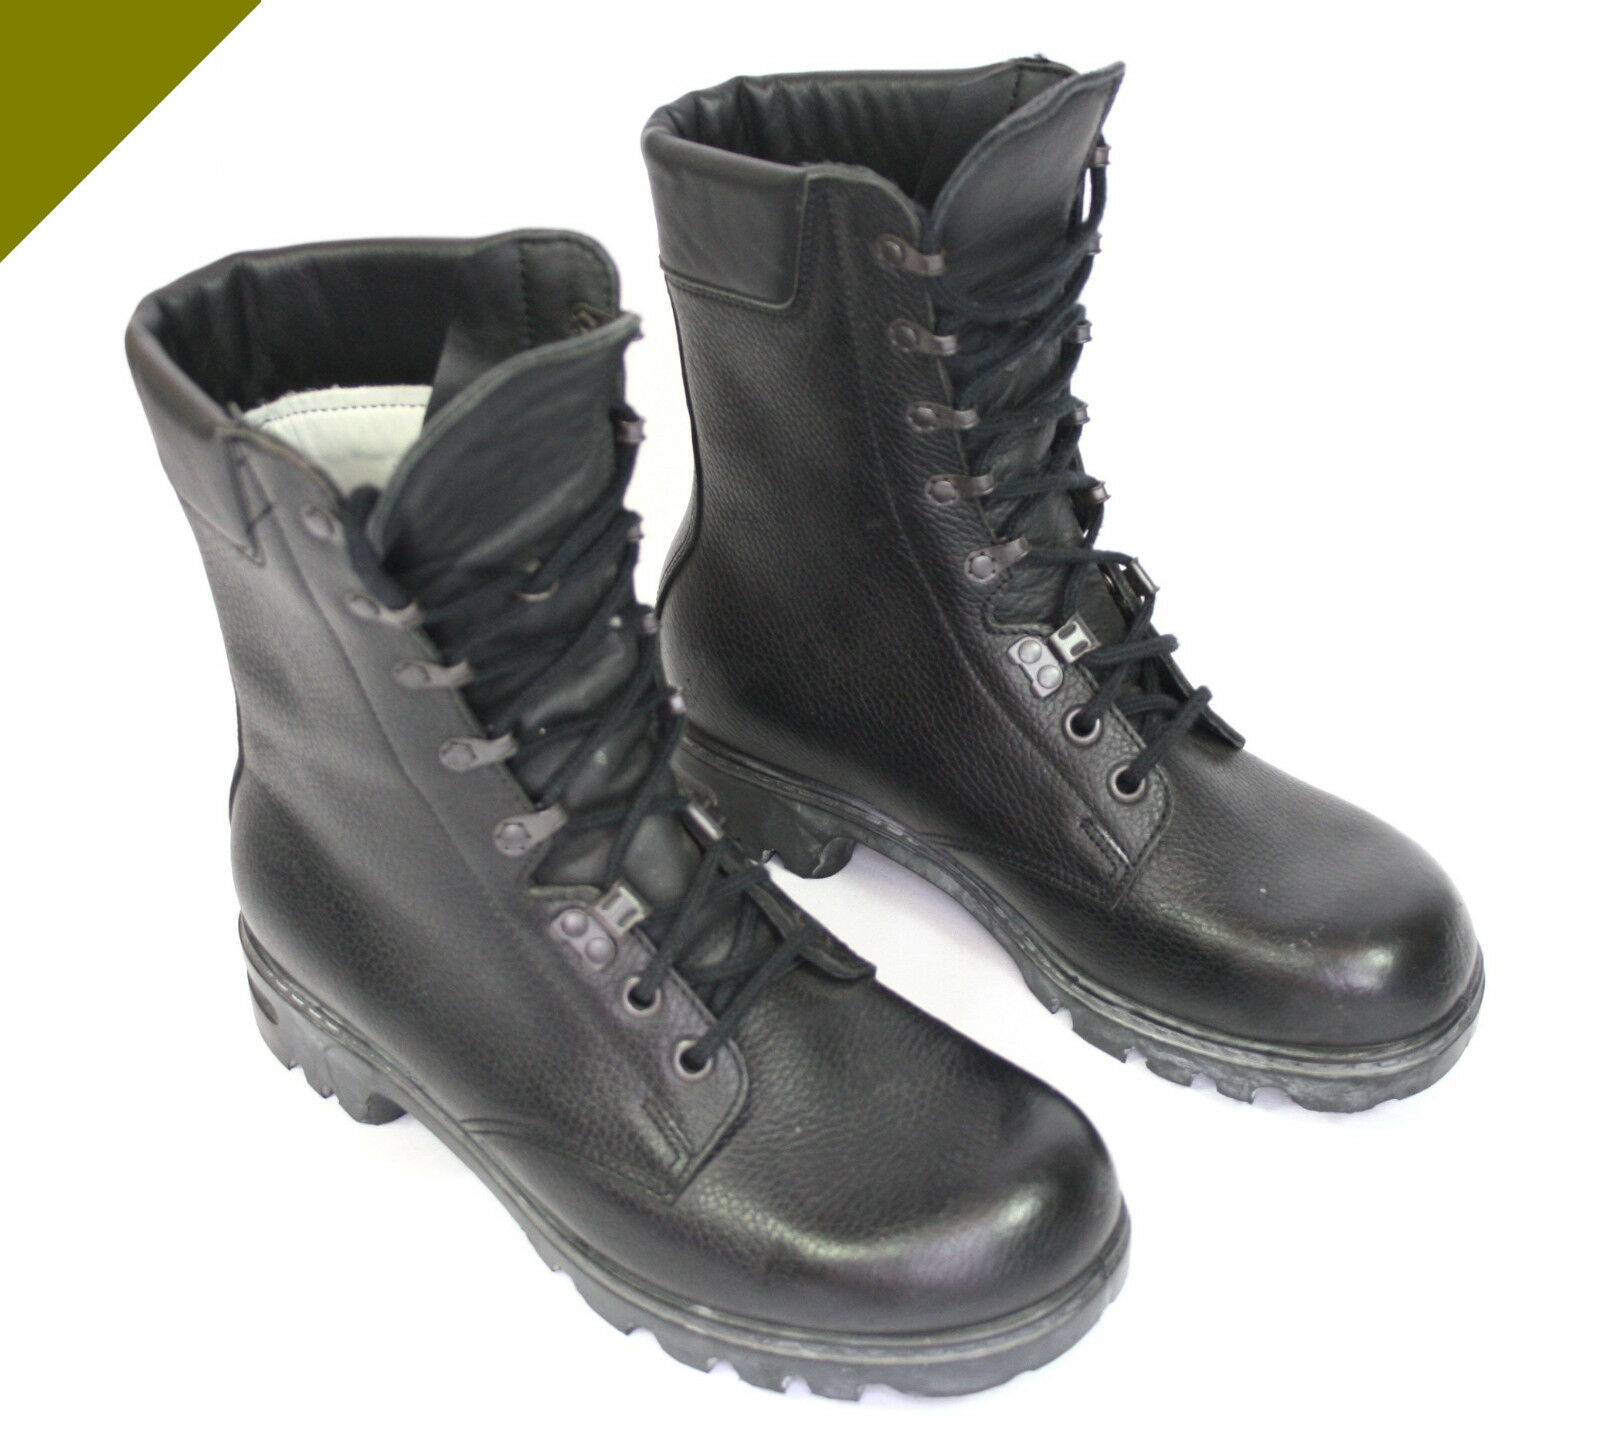 Provided Original Bw Kampfstiefel Stiefel Leder Bundeswehr Schuhe Kampfschuhe Tropen Oliv Keep You Fit All The Time Militaria